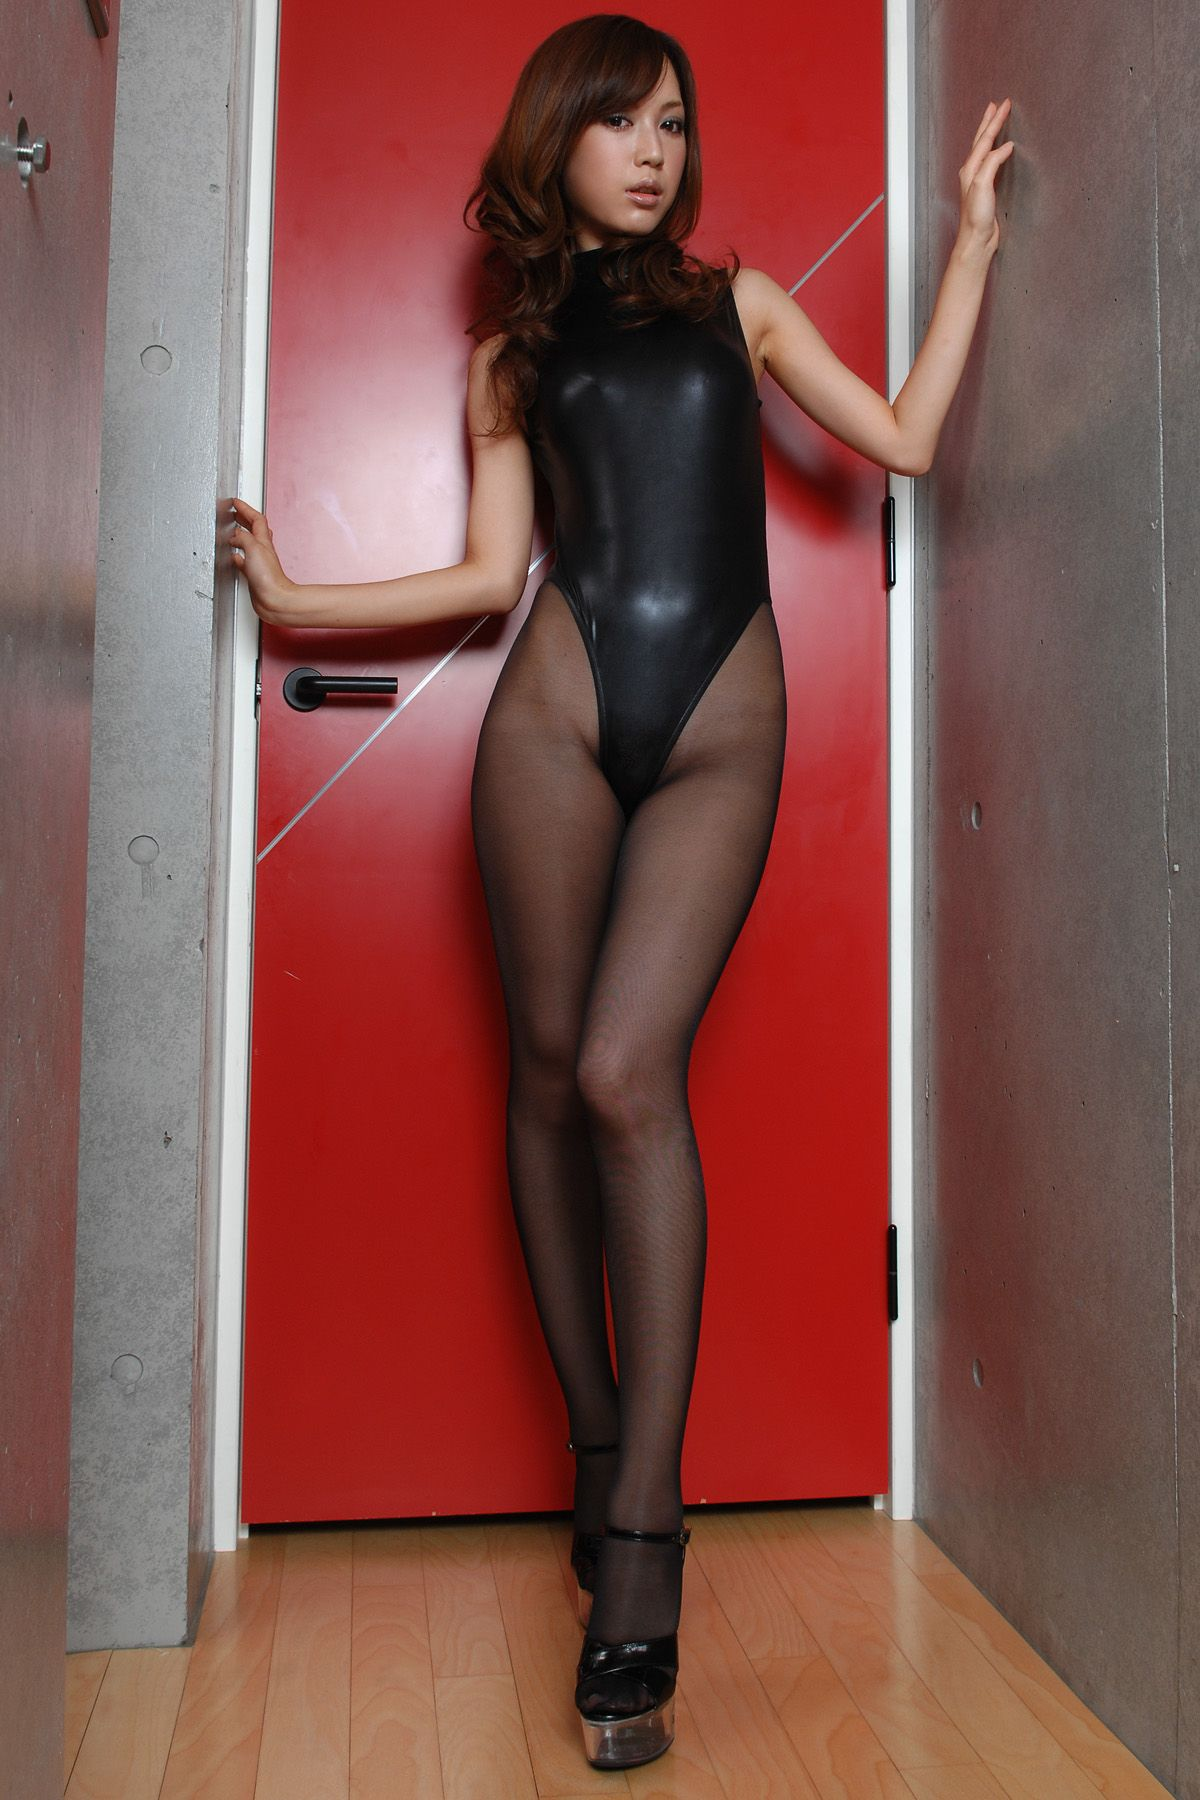 Pantyhose legs over 50